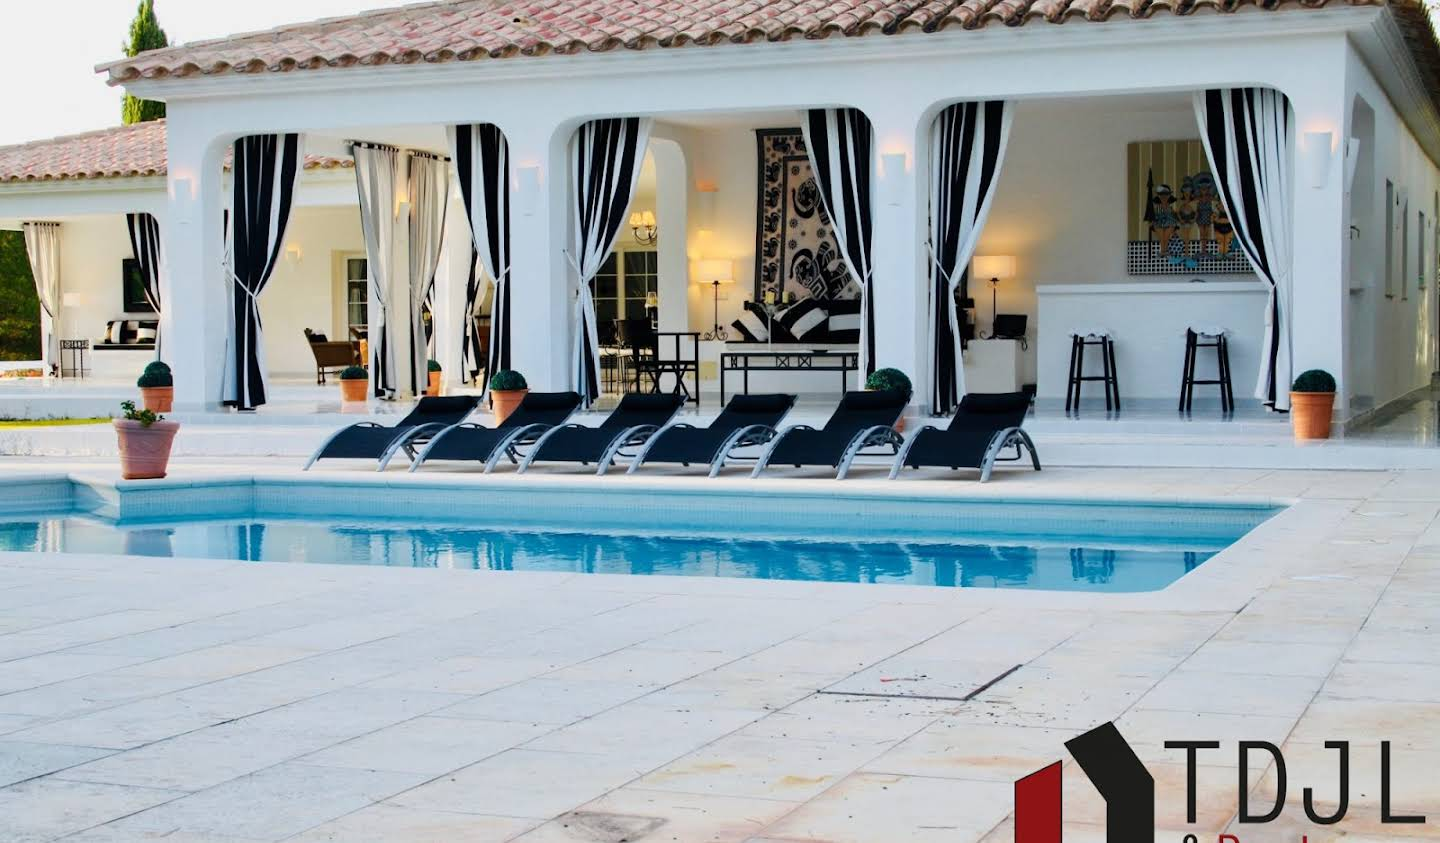 Villa with pool and terrace Es Mercadal